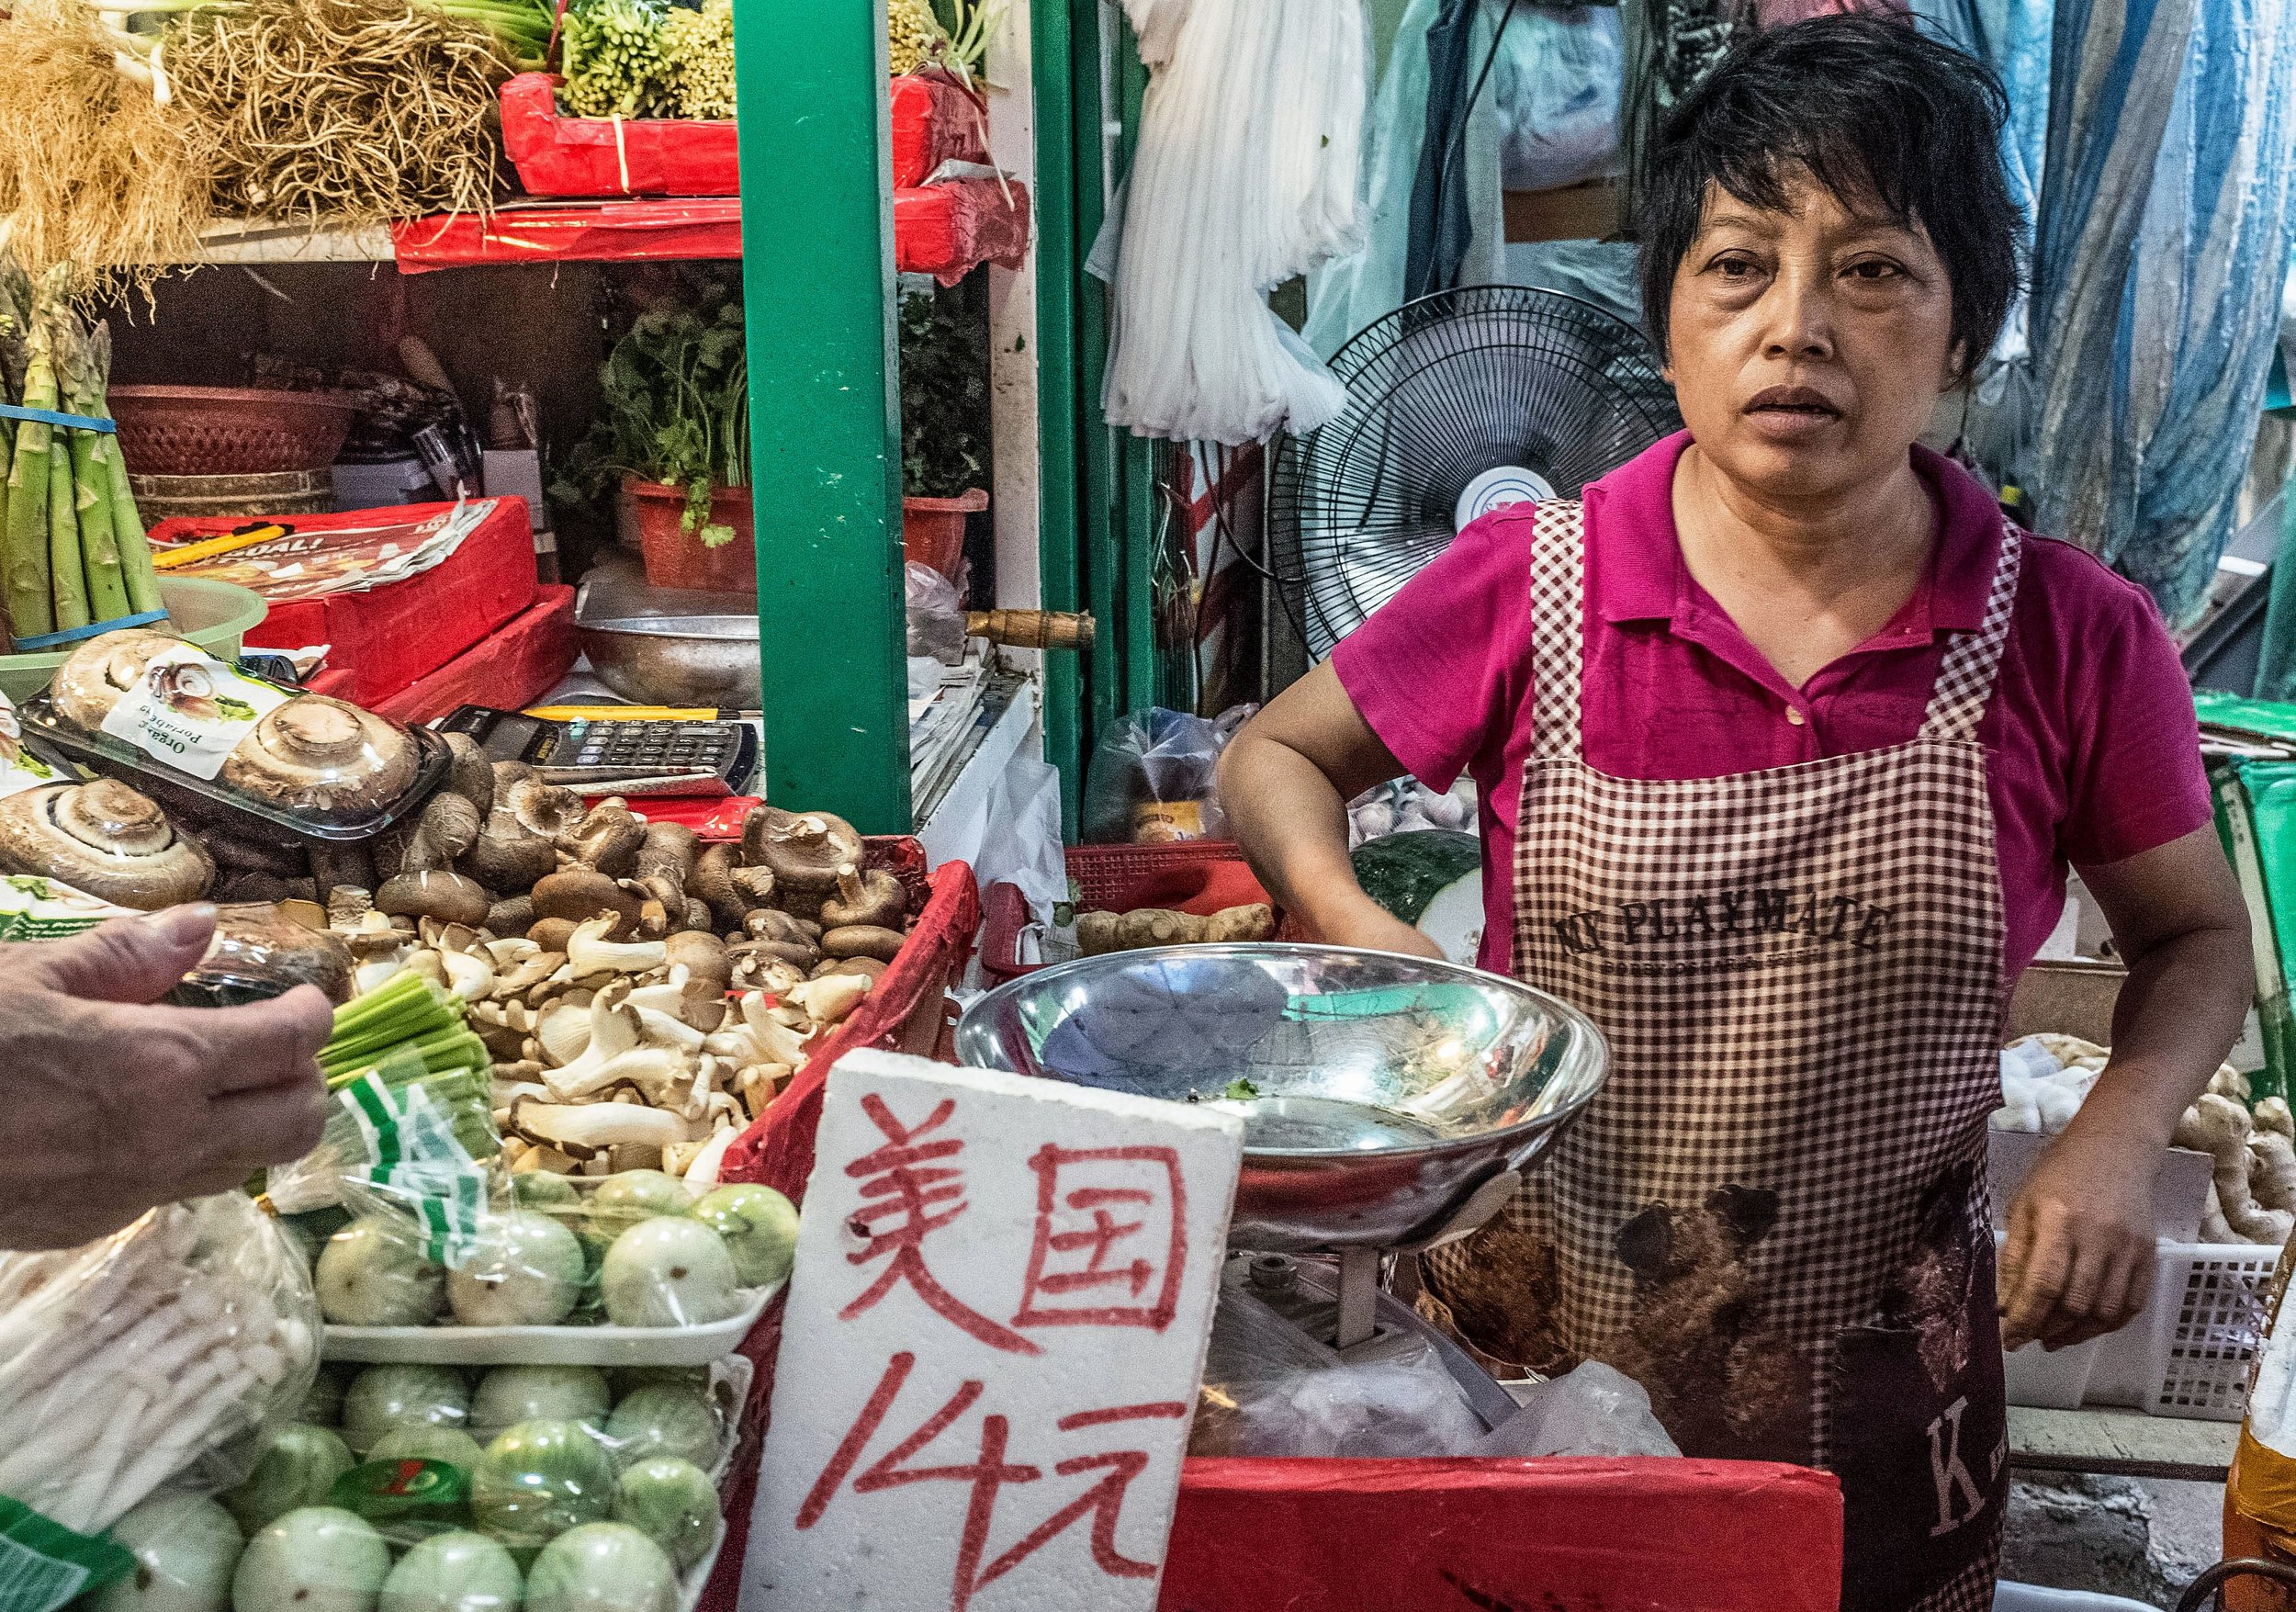 Notes From Hong Kong - by Michael Kennedy